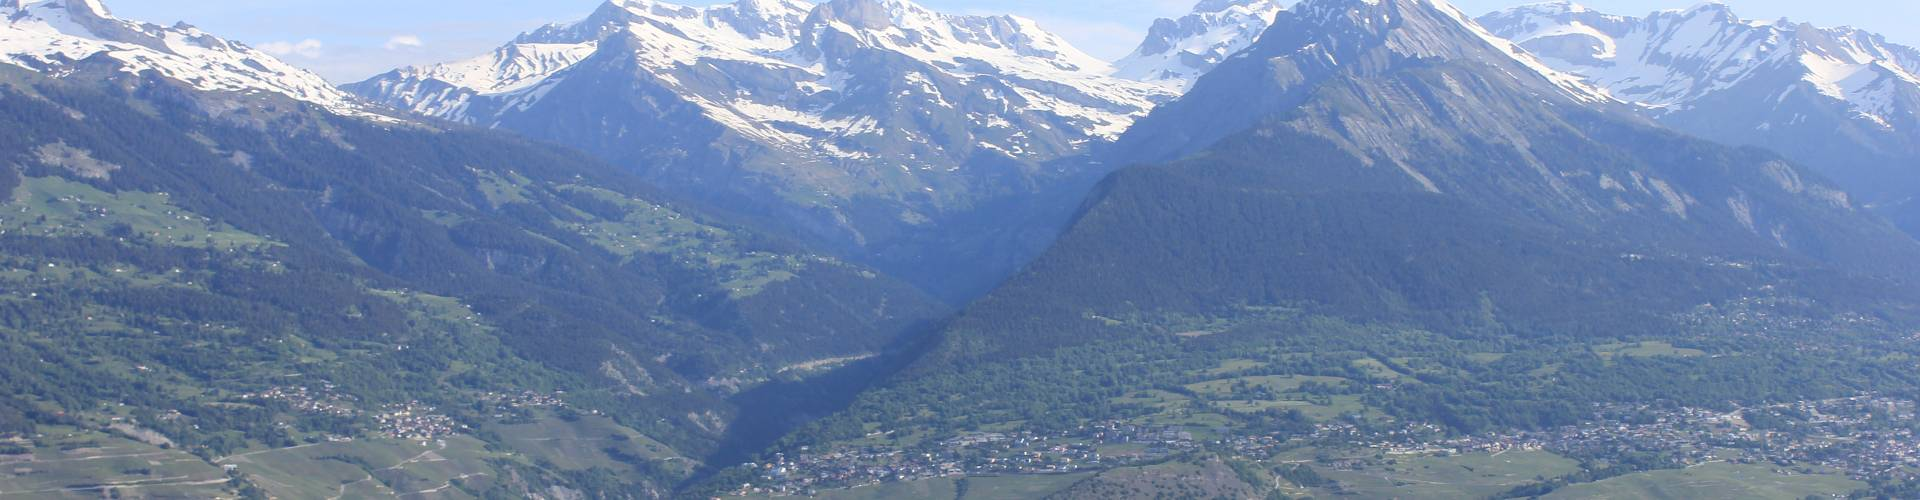 RE/MAX Immobilier Nendaz